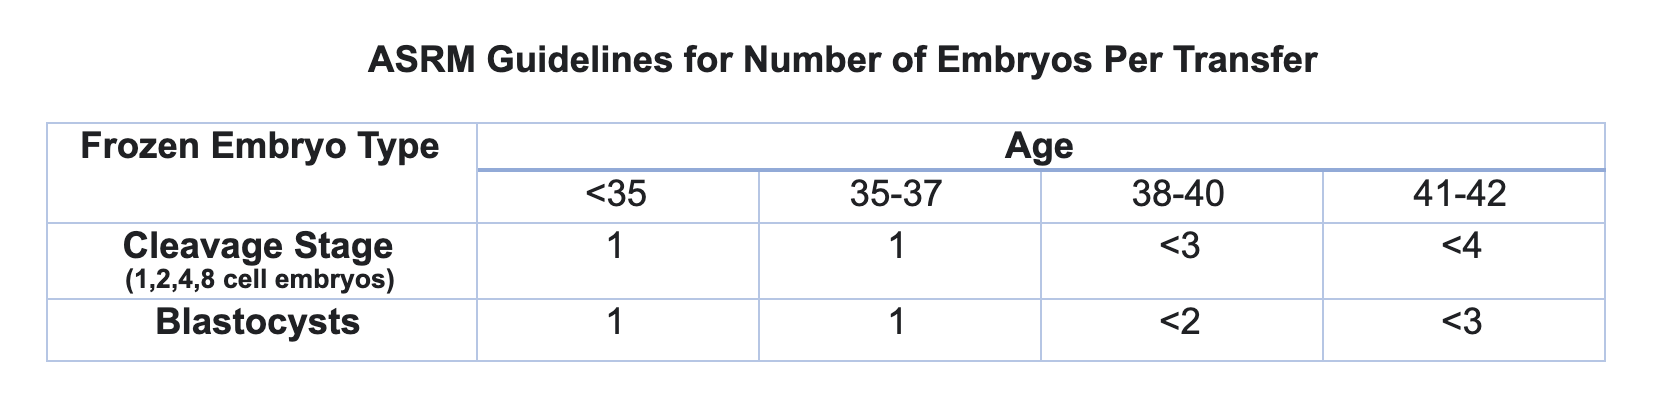 ASMR Guidelines for Embryo Transfers